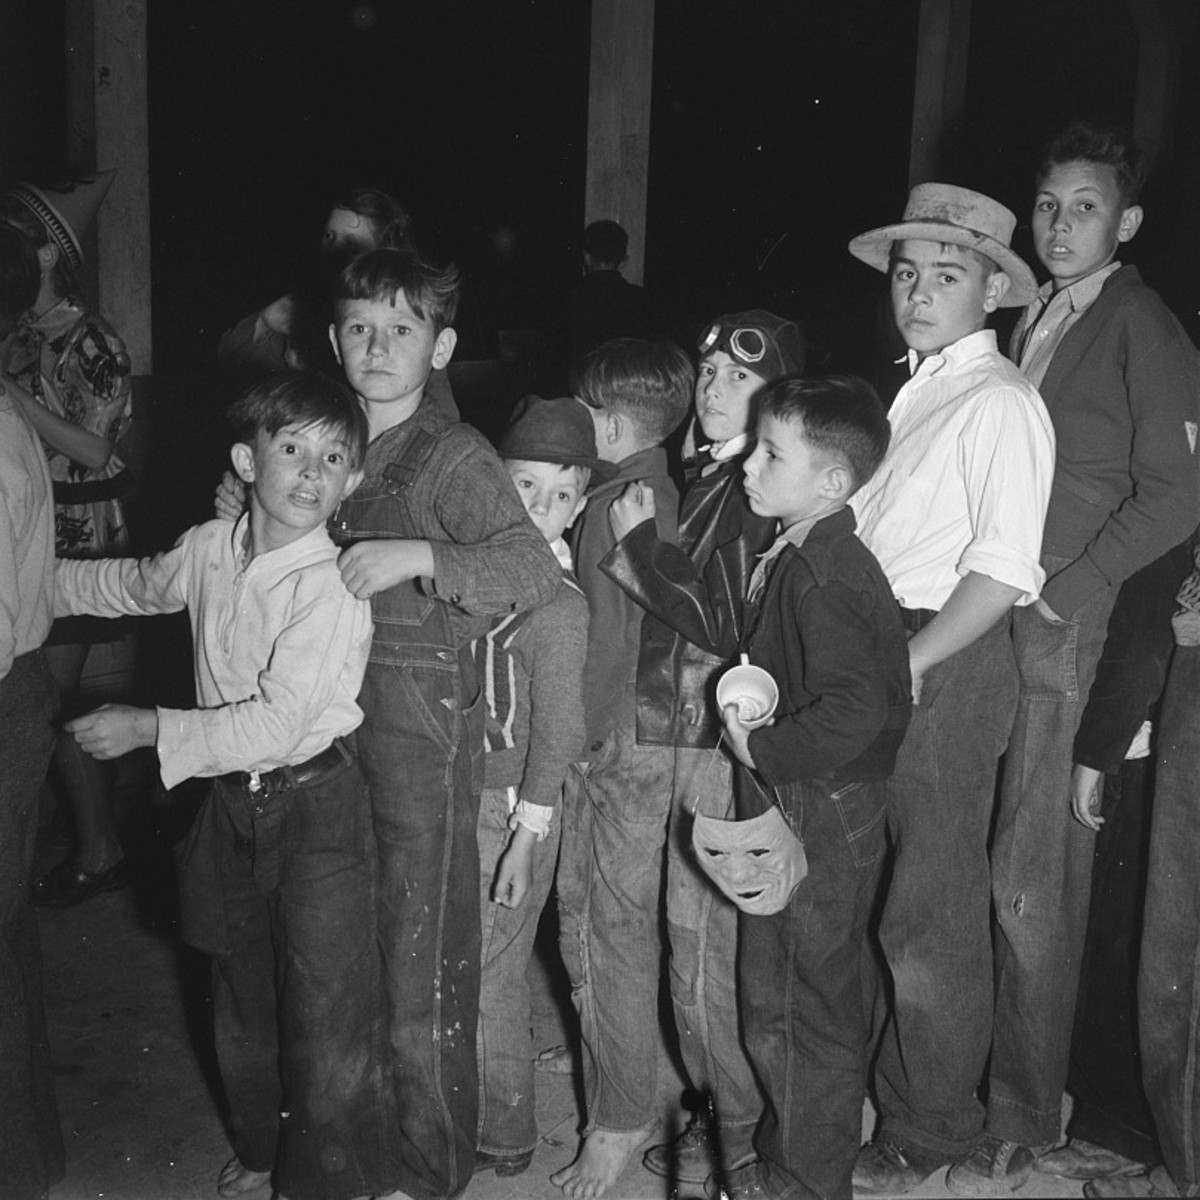 A group of boys pushing through a crowd at a Halloween party in the 1930s.